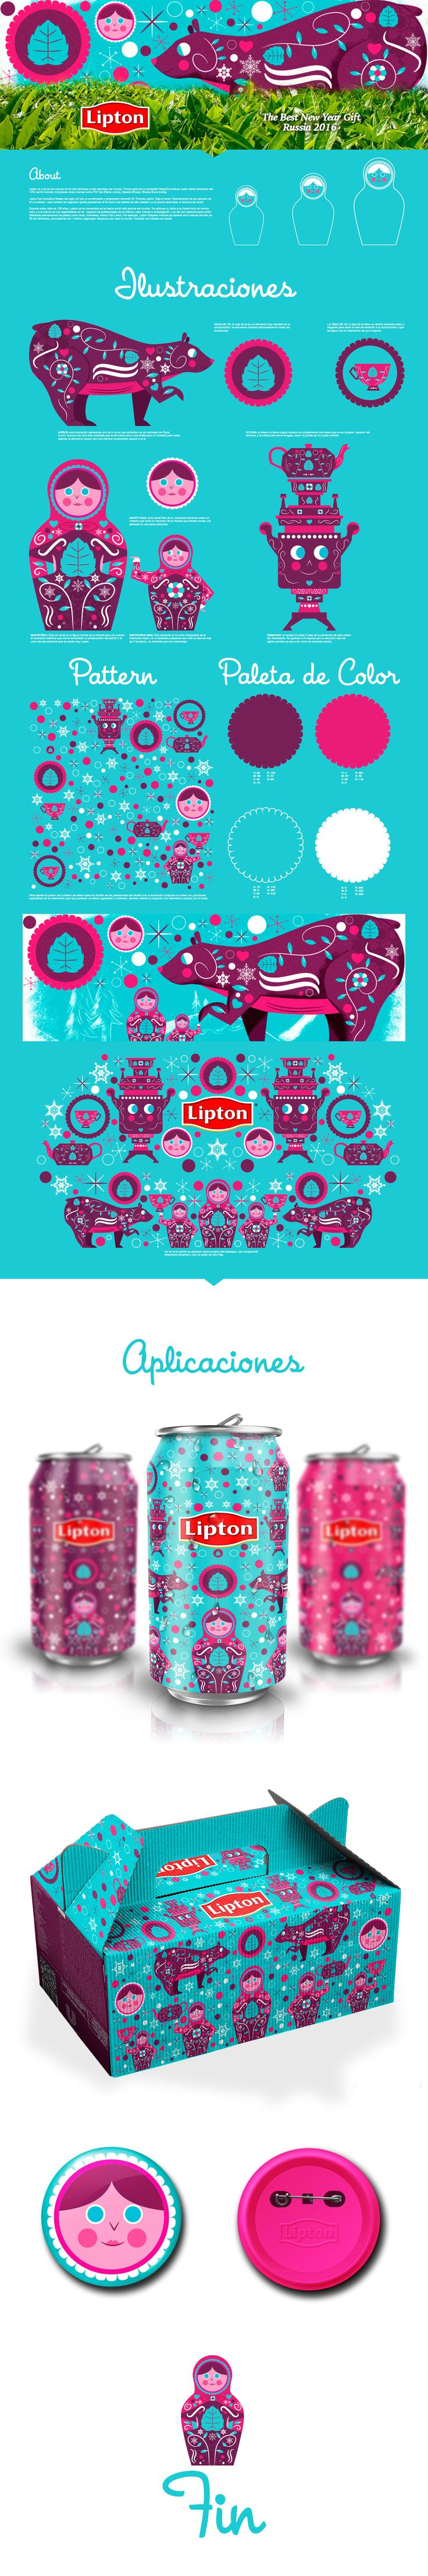 LIPTON - NEW YEAR EDITION 2016 on Behance